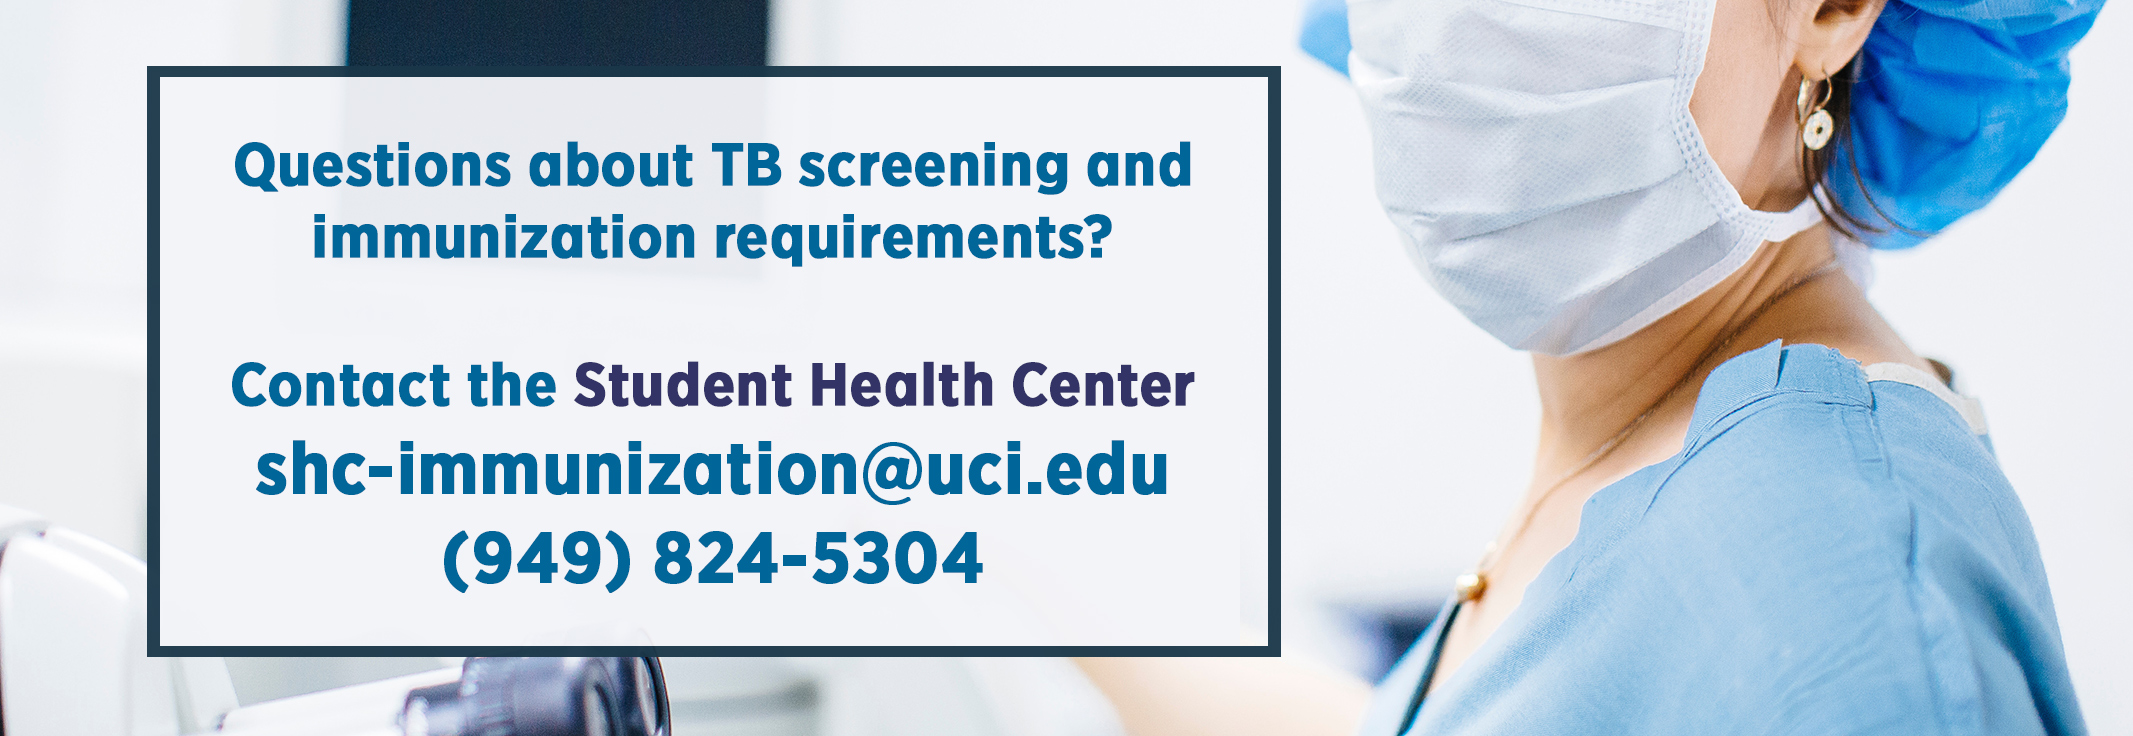 Questions about TB screening and immunization requirements? Contact the Student Health Center: shc-immunization@uci.edu / (949) 824-5304